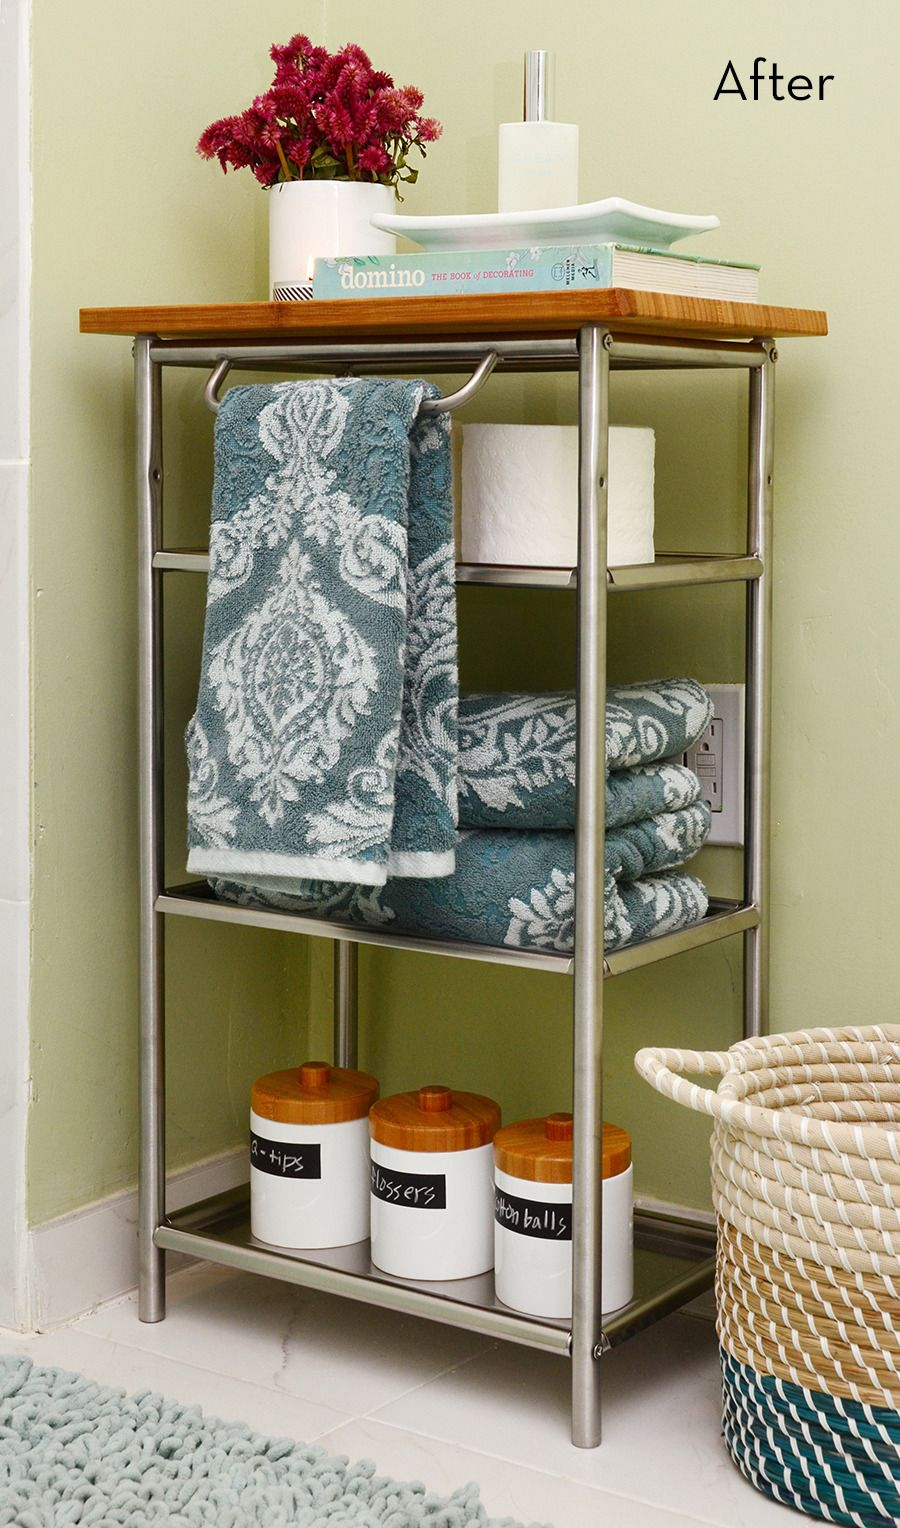 Before And After: A Grundtal Cart IKEA Hack